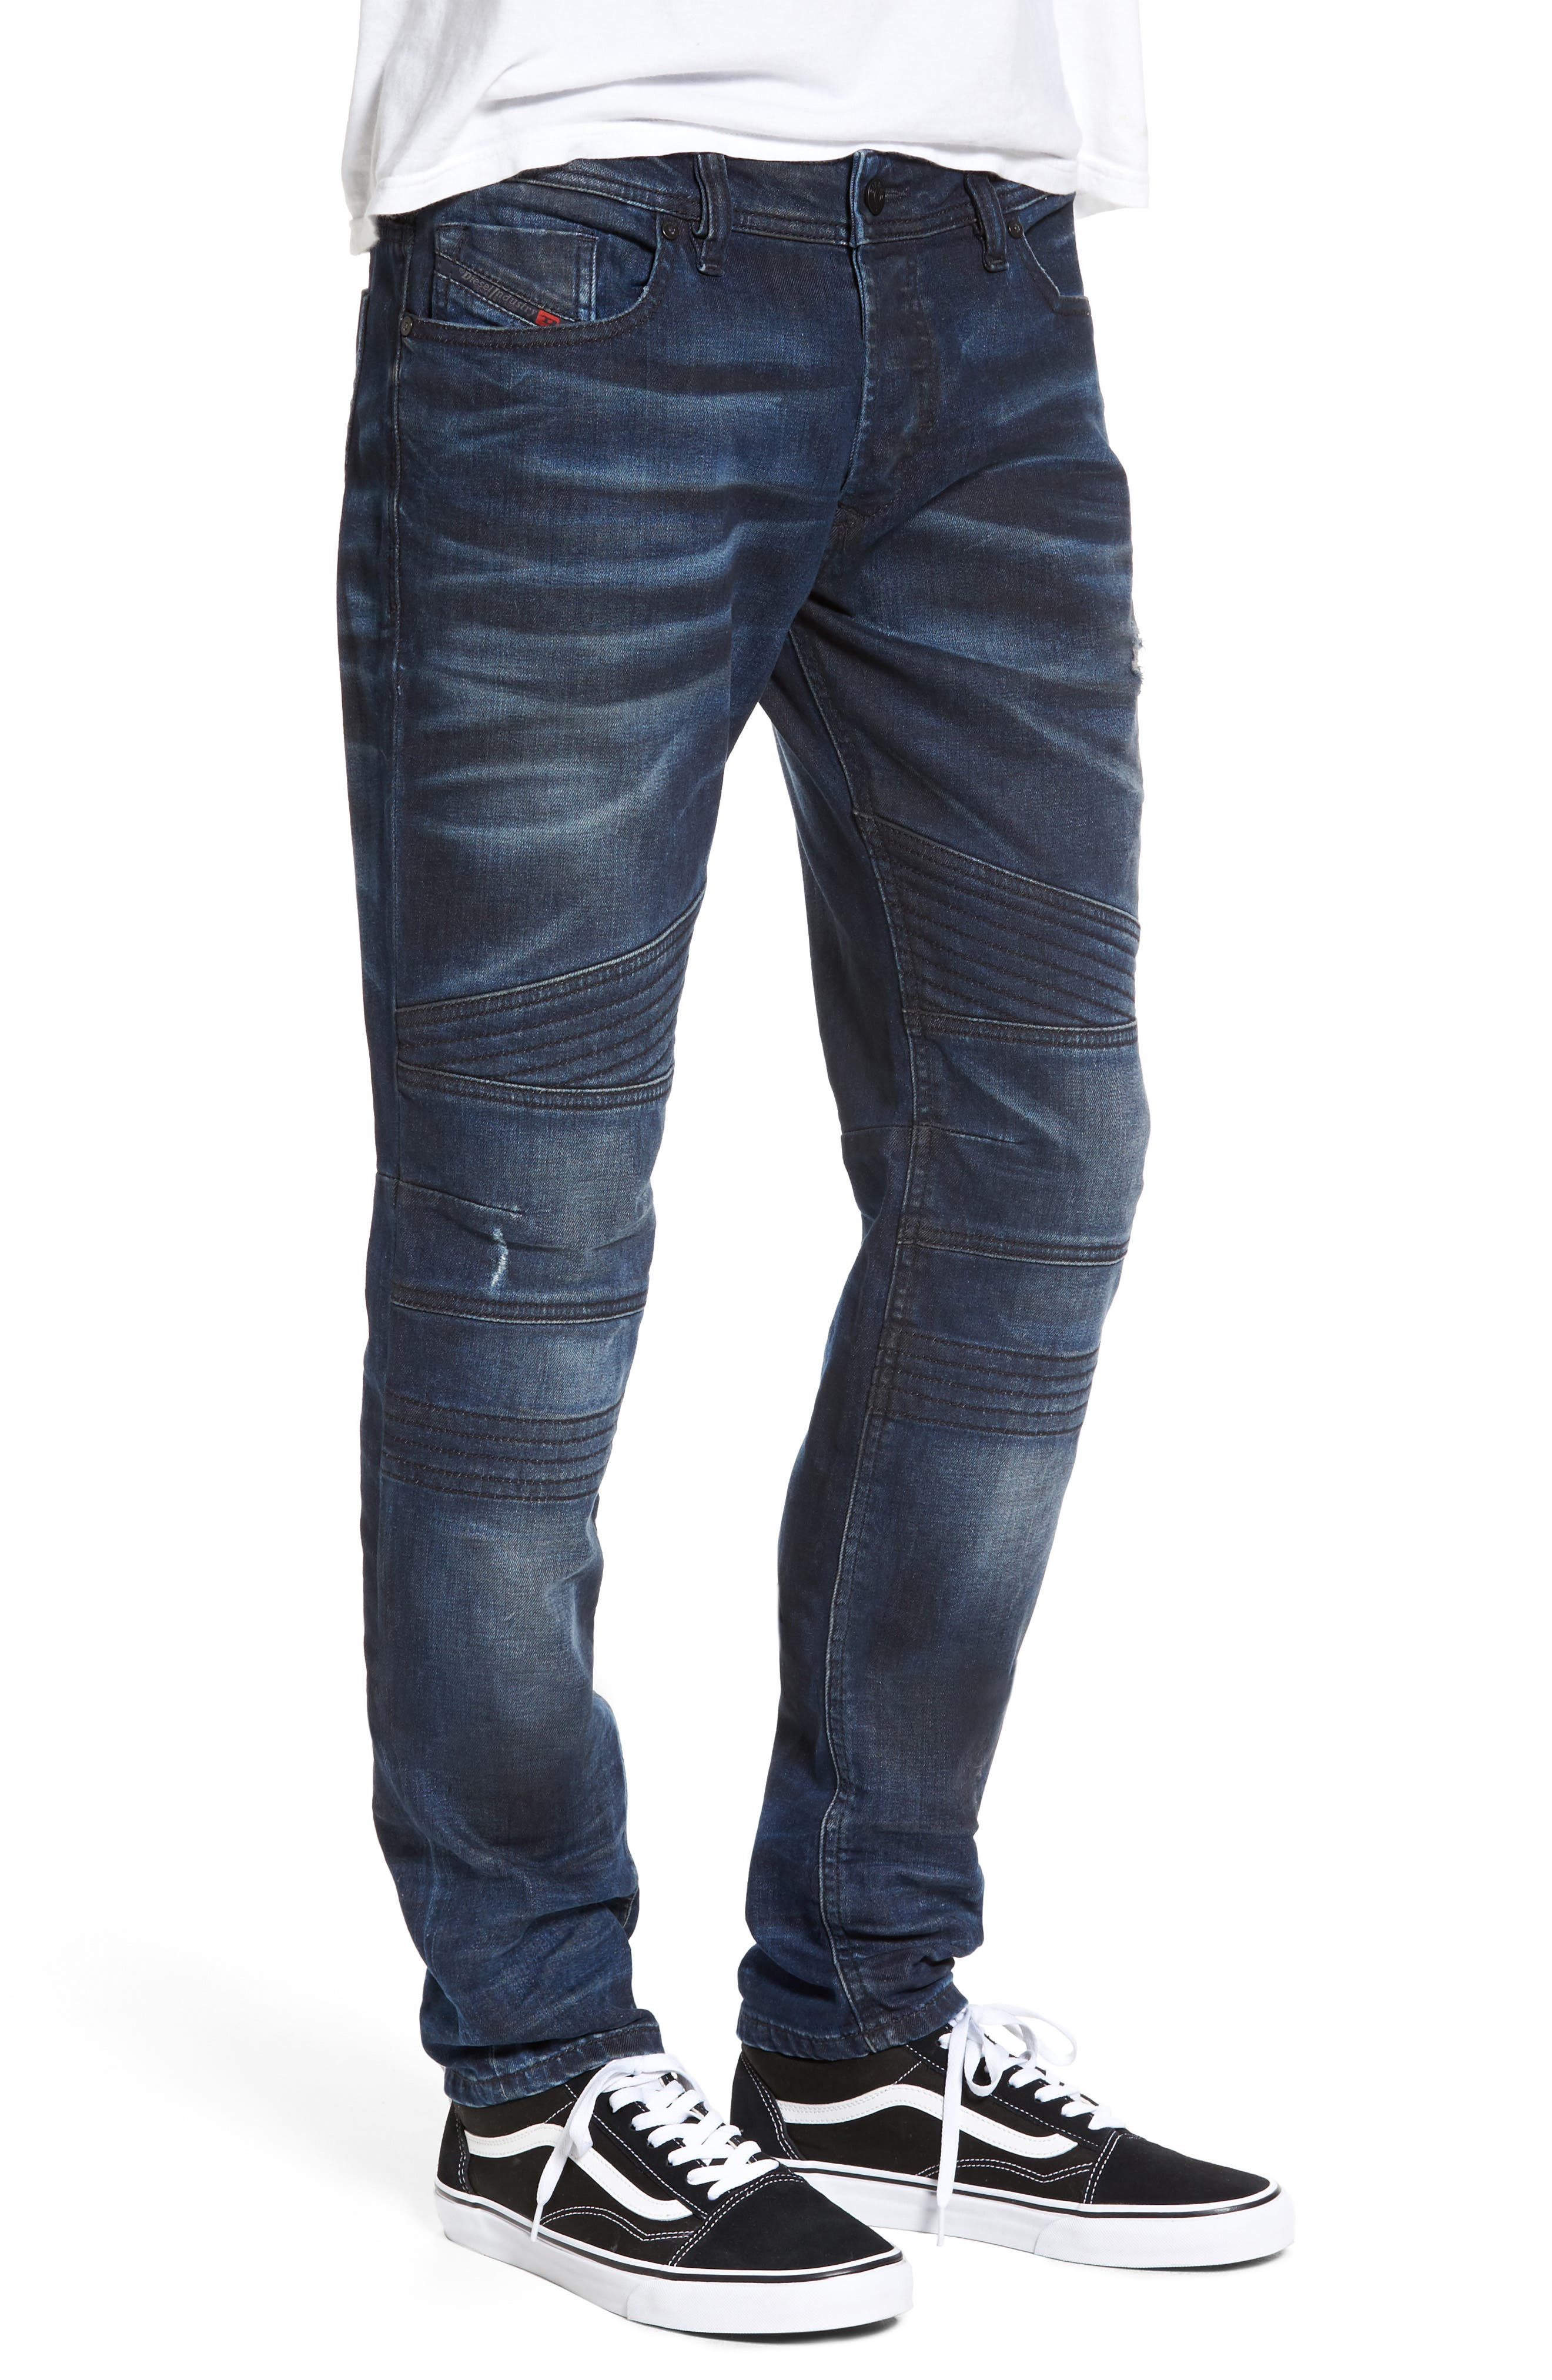 Fourk Skinny Fit Jeans,                             Alternate thumbnail 3, color,                             400